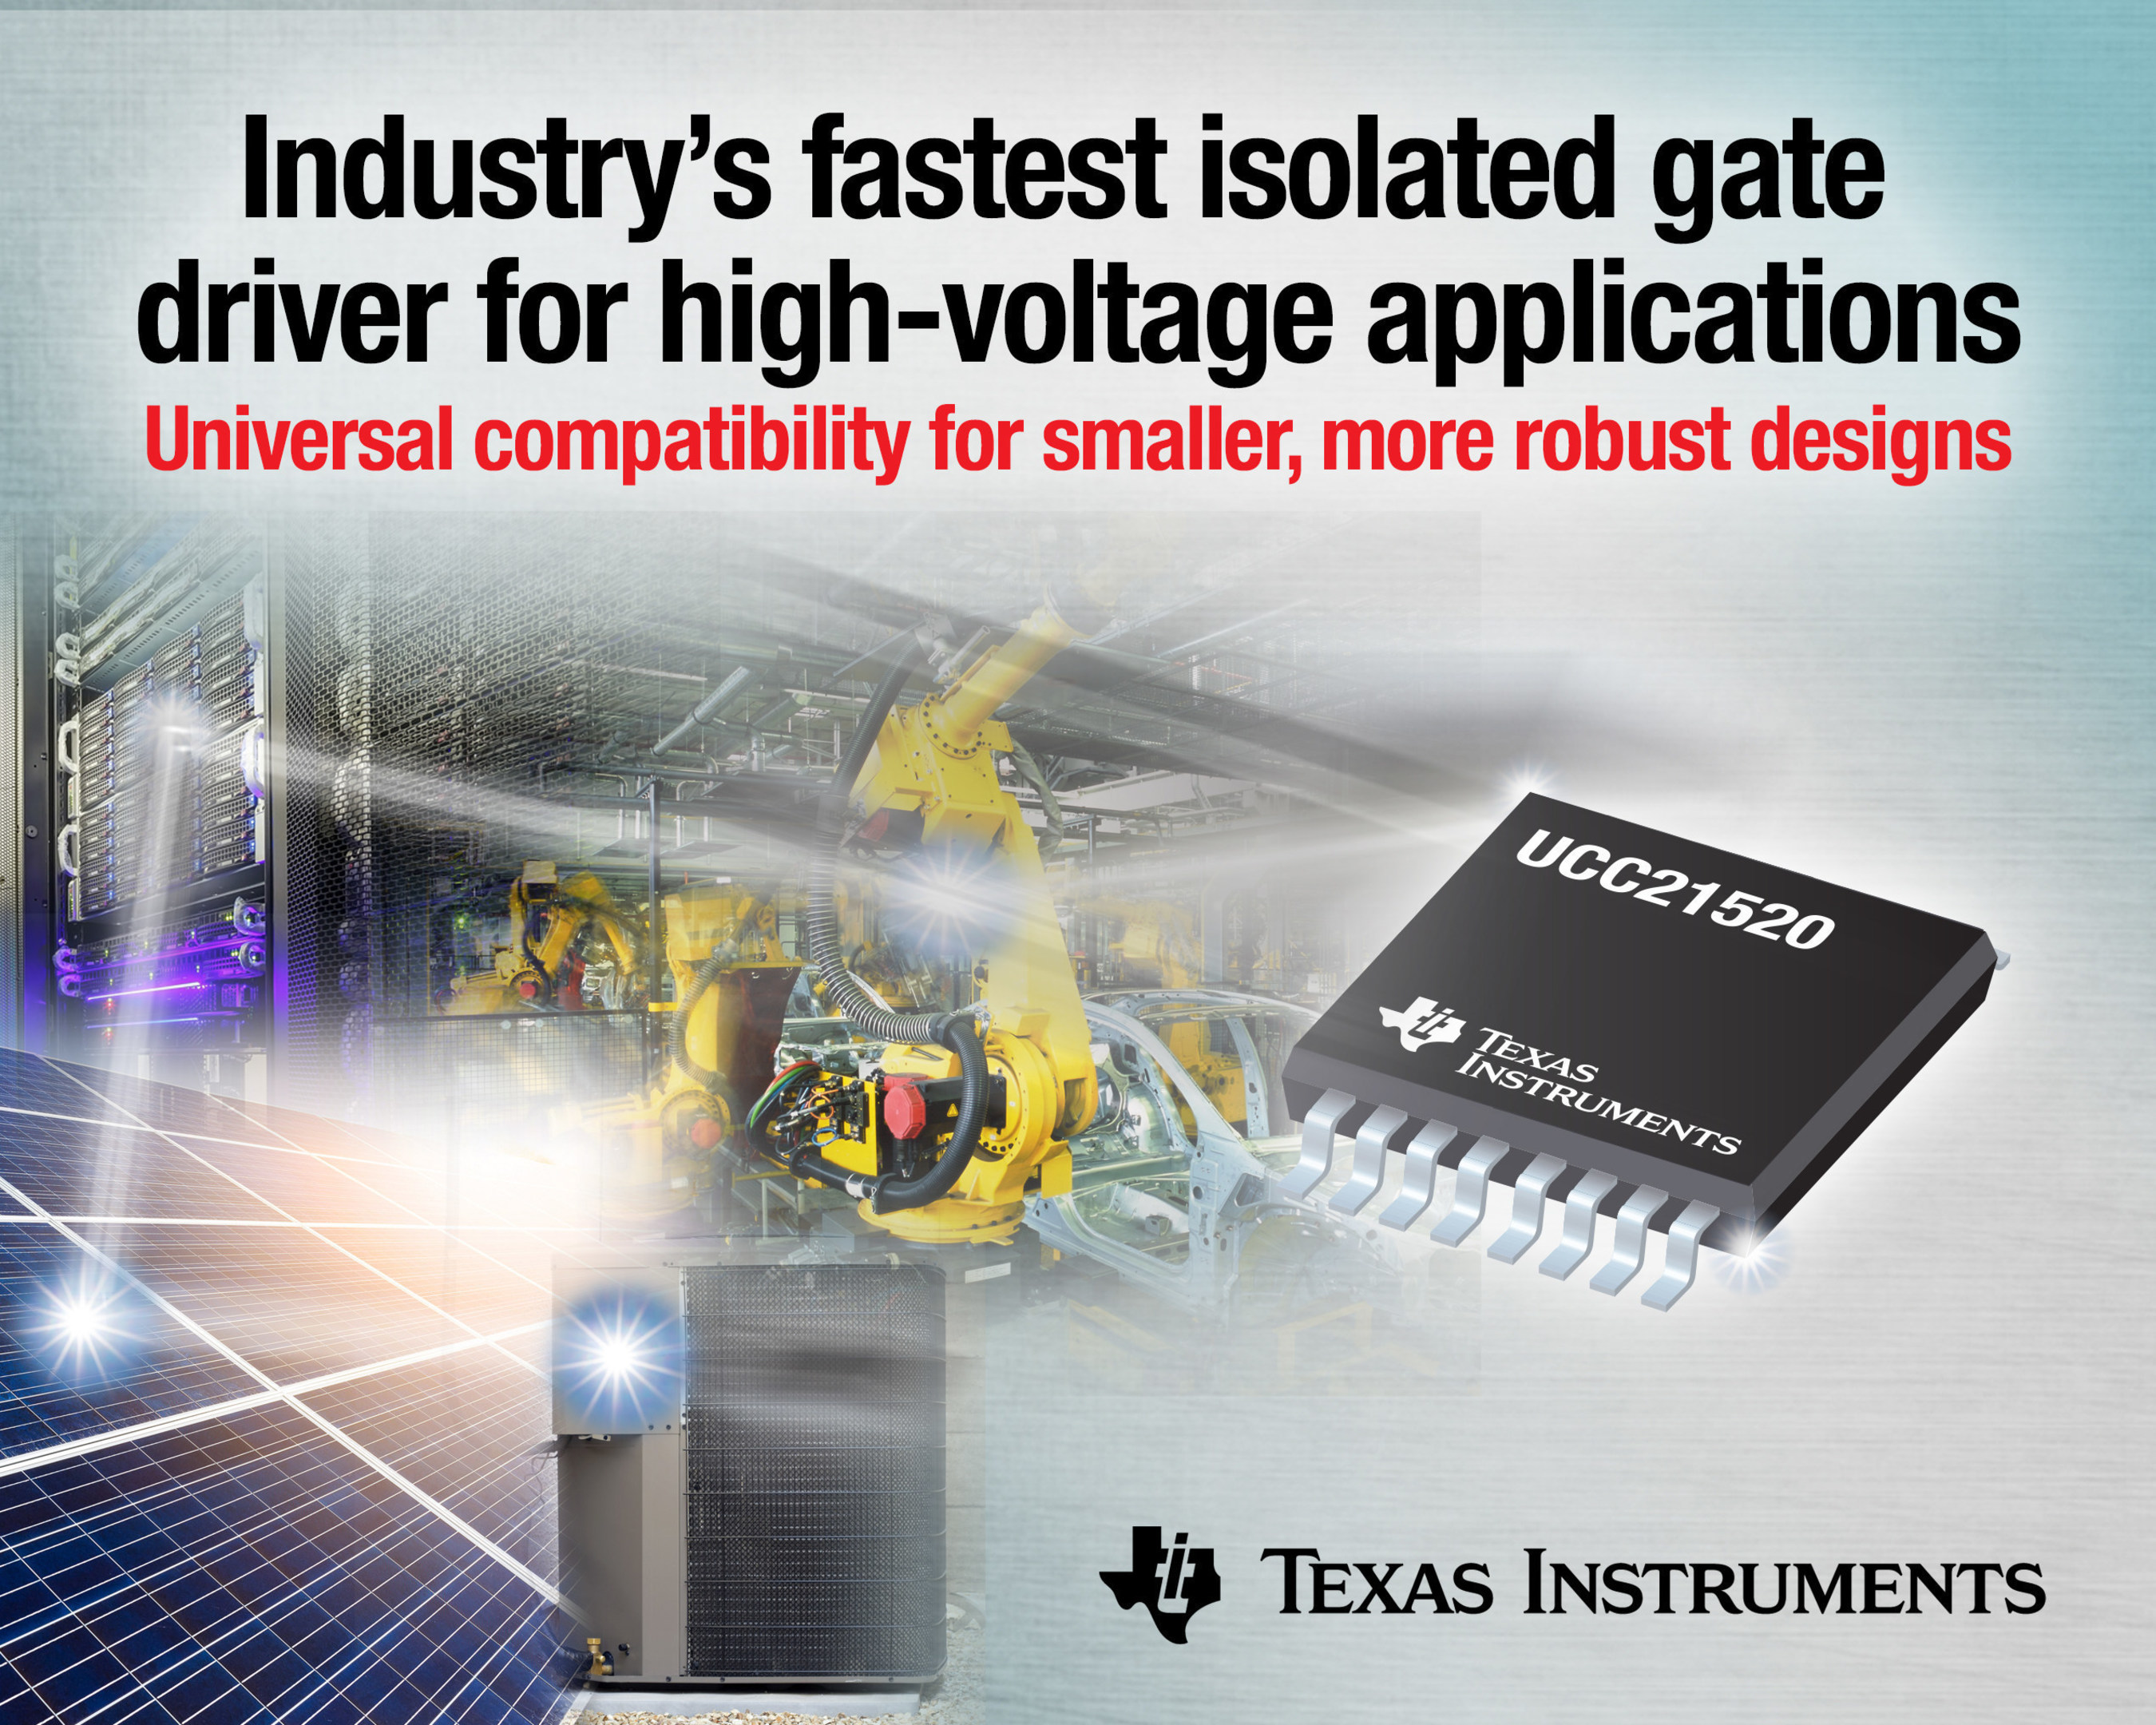 TI introduces the industry's fastest isolated gate driver for high-voltage applications